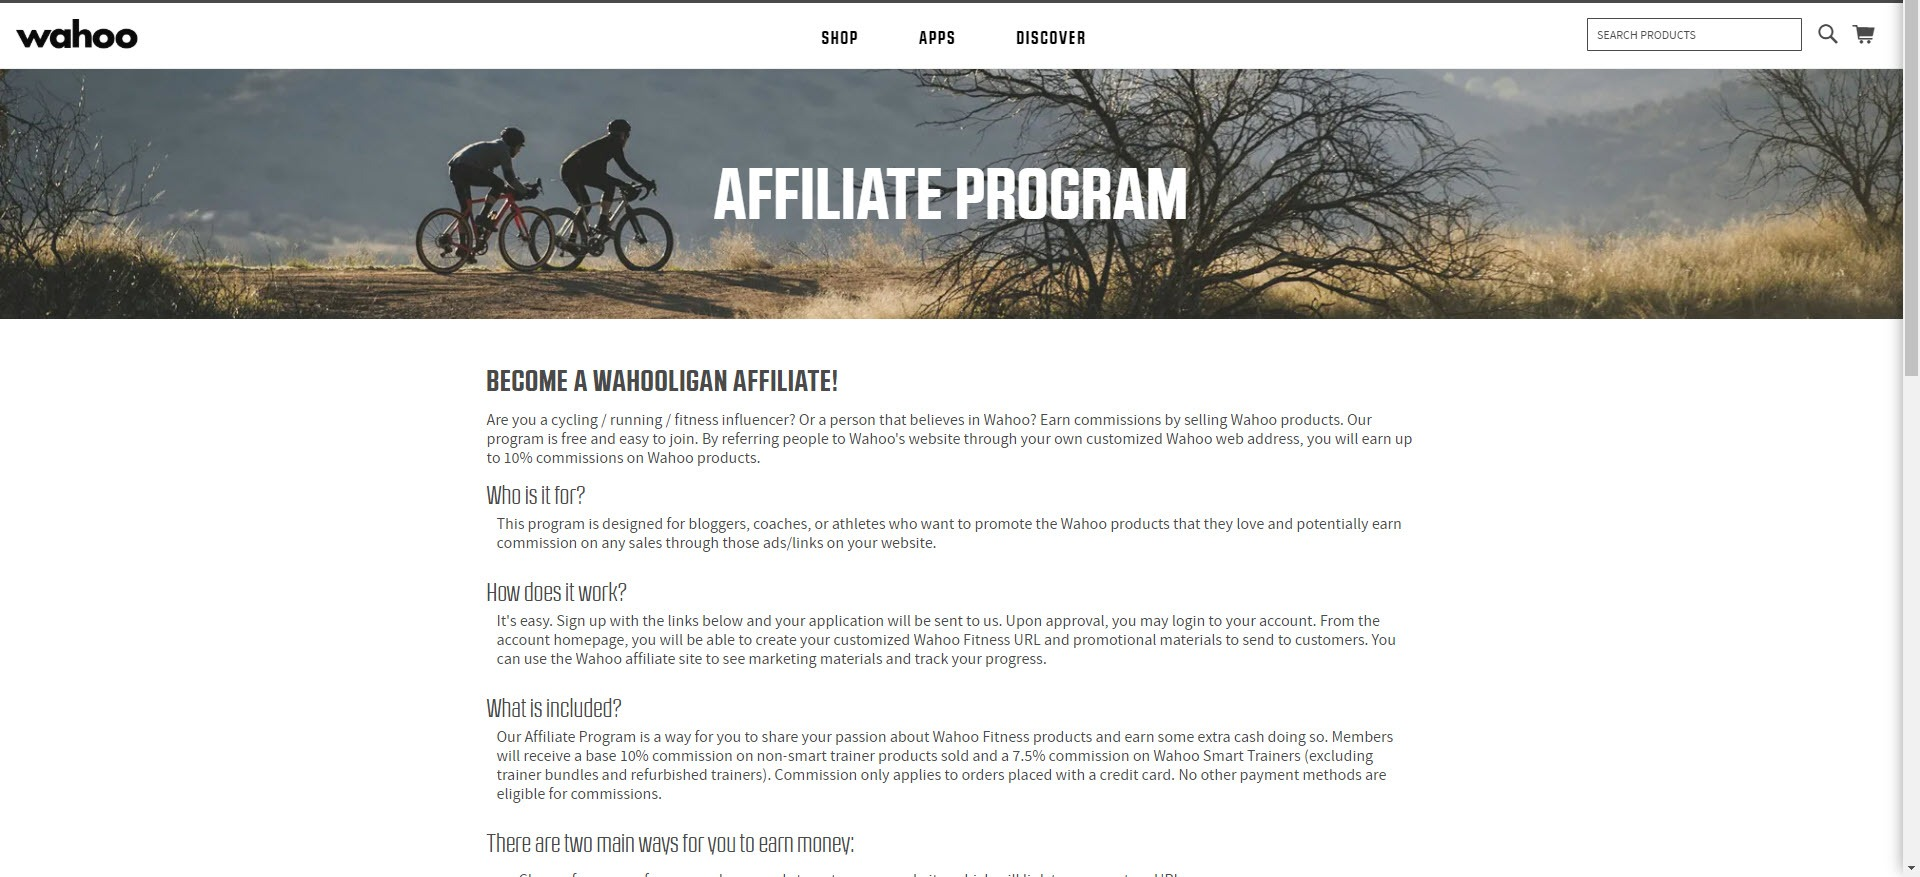 Best Fitness Affiliate Programs 2019 - wahoo affiliate